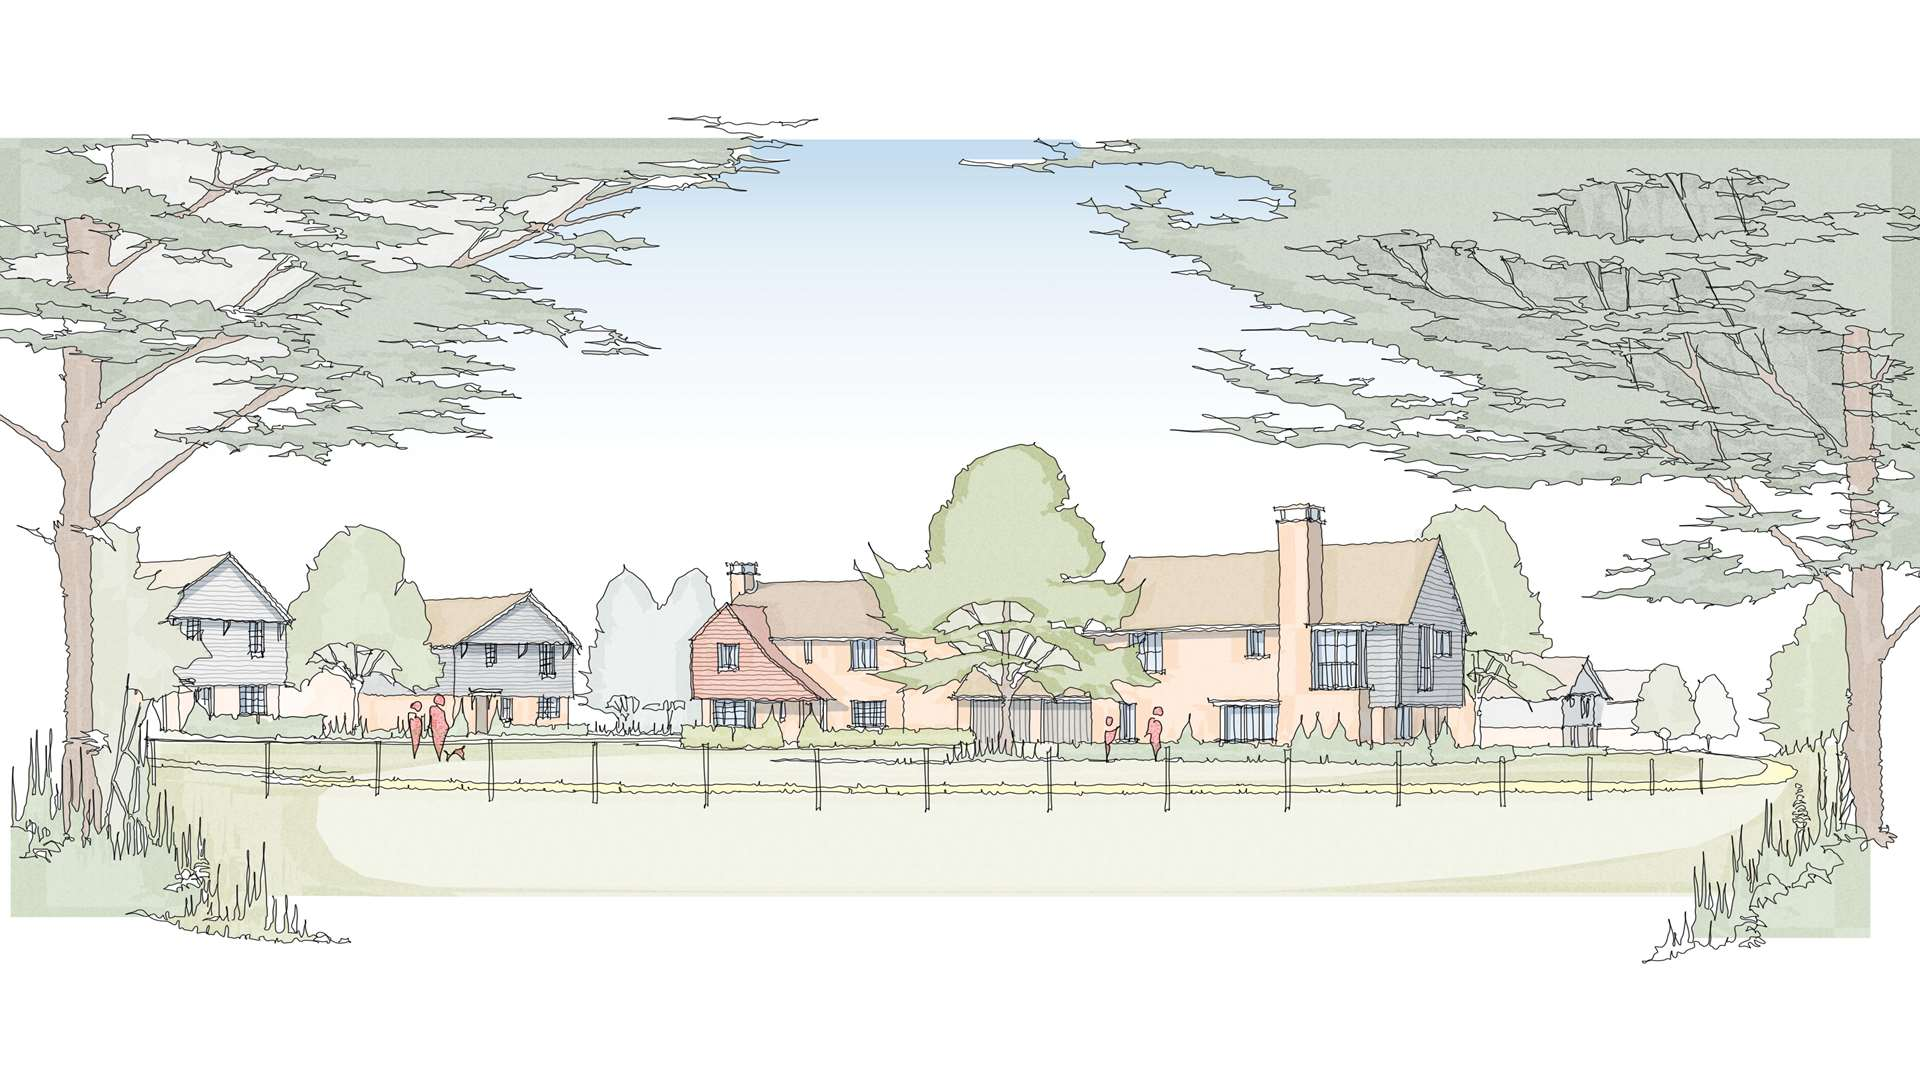 An artist's impression of the plans for 28 homes in Nonington